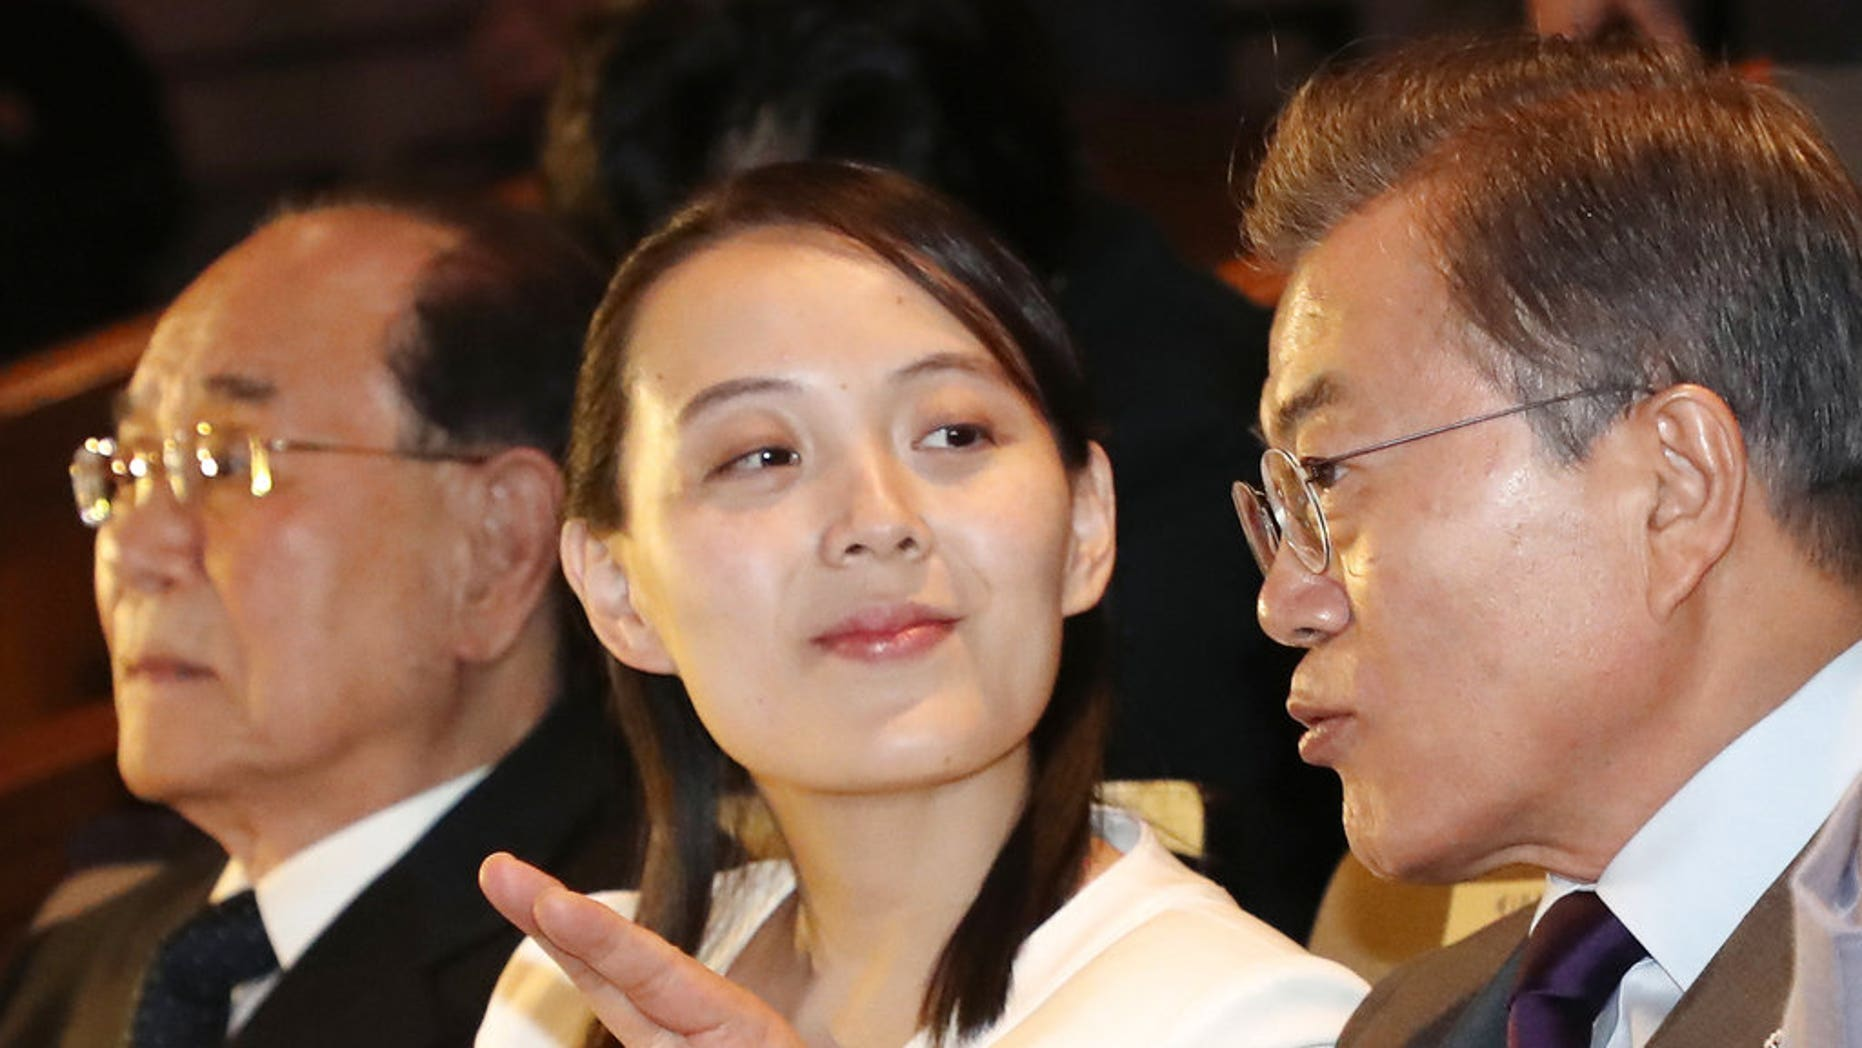 """South Koran President Moon Jae-in talks with Kim Yo Jong, North Korean leader Kim Jong Un's sister, during a performance of North Korea's Samjiyon Orchestra at National Theater in Seoul, South Korea, Sunday, Feb. 11, 2018. A rare invitation to Pyongyang for South Korea's president marked Day Two of the North Korean Kim dynasty's southern road tour, part of an accelerating diplomatic thaw that included some Korean liquor over lunch and the shared joy of watching a """"unified"""" Korea team play hockey at the Olympics. At left is North Korea's nominal head of state Kim Yong Nam. (Bee Jae-man/Yonhap via AP)"""